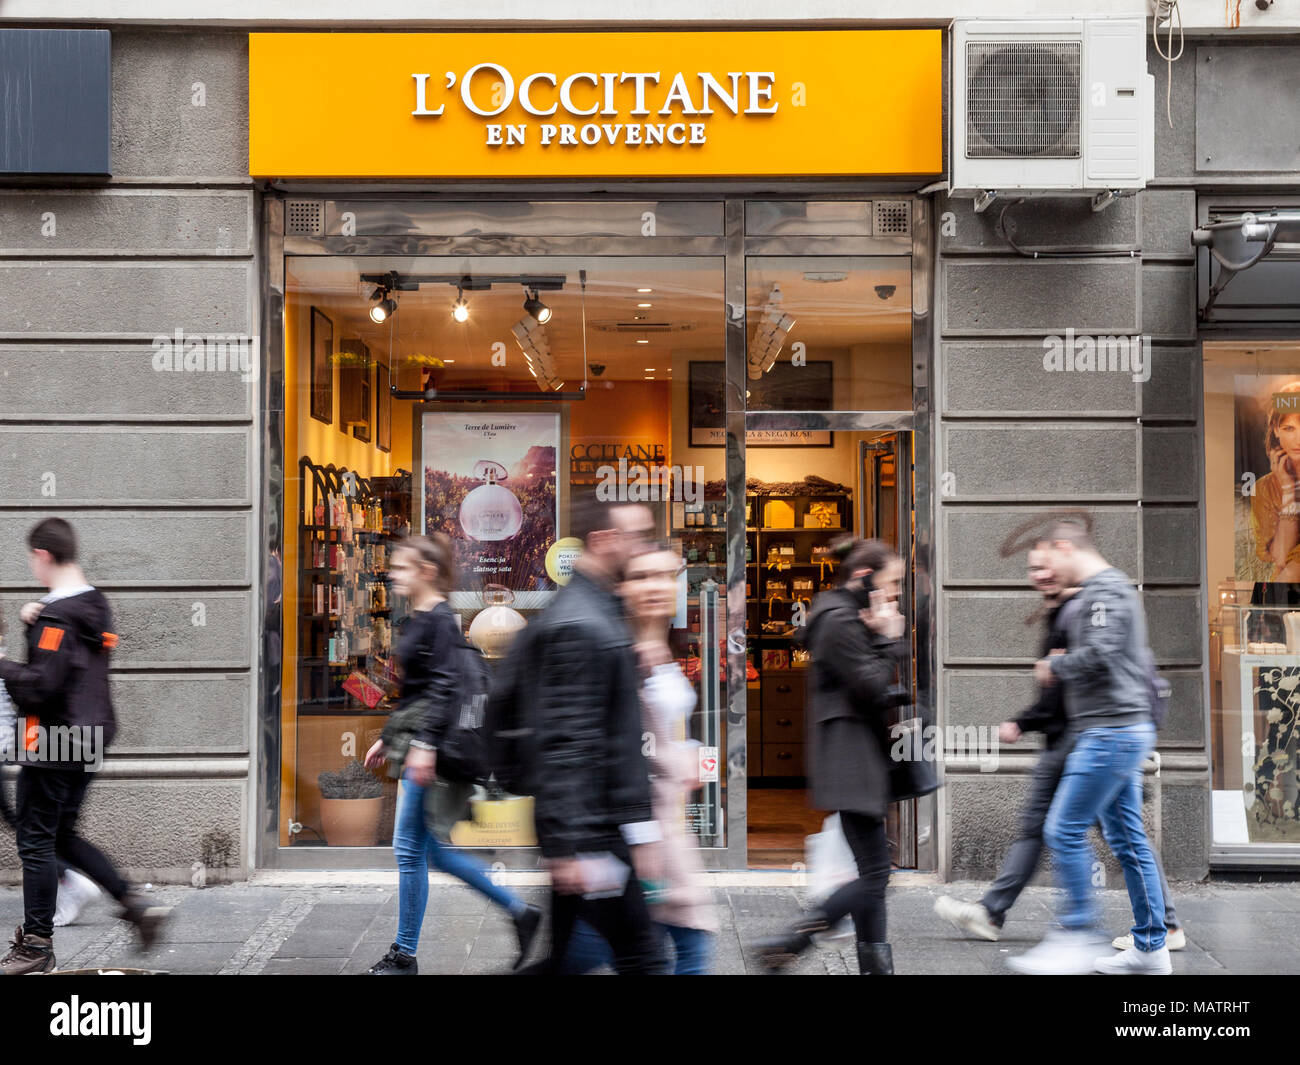 BELGRADE, SERBIA - MARCH 31, 2018: L'Occitane en Provence logo on their shop of Belgrade, people passing by. This brand is the most known Southern Fra - Stock Image